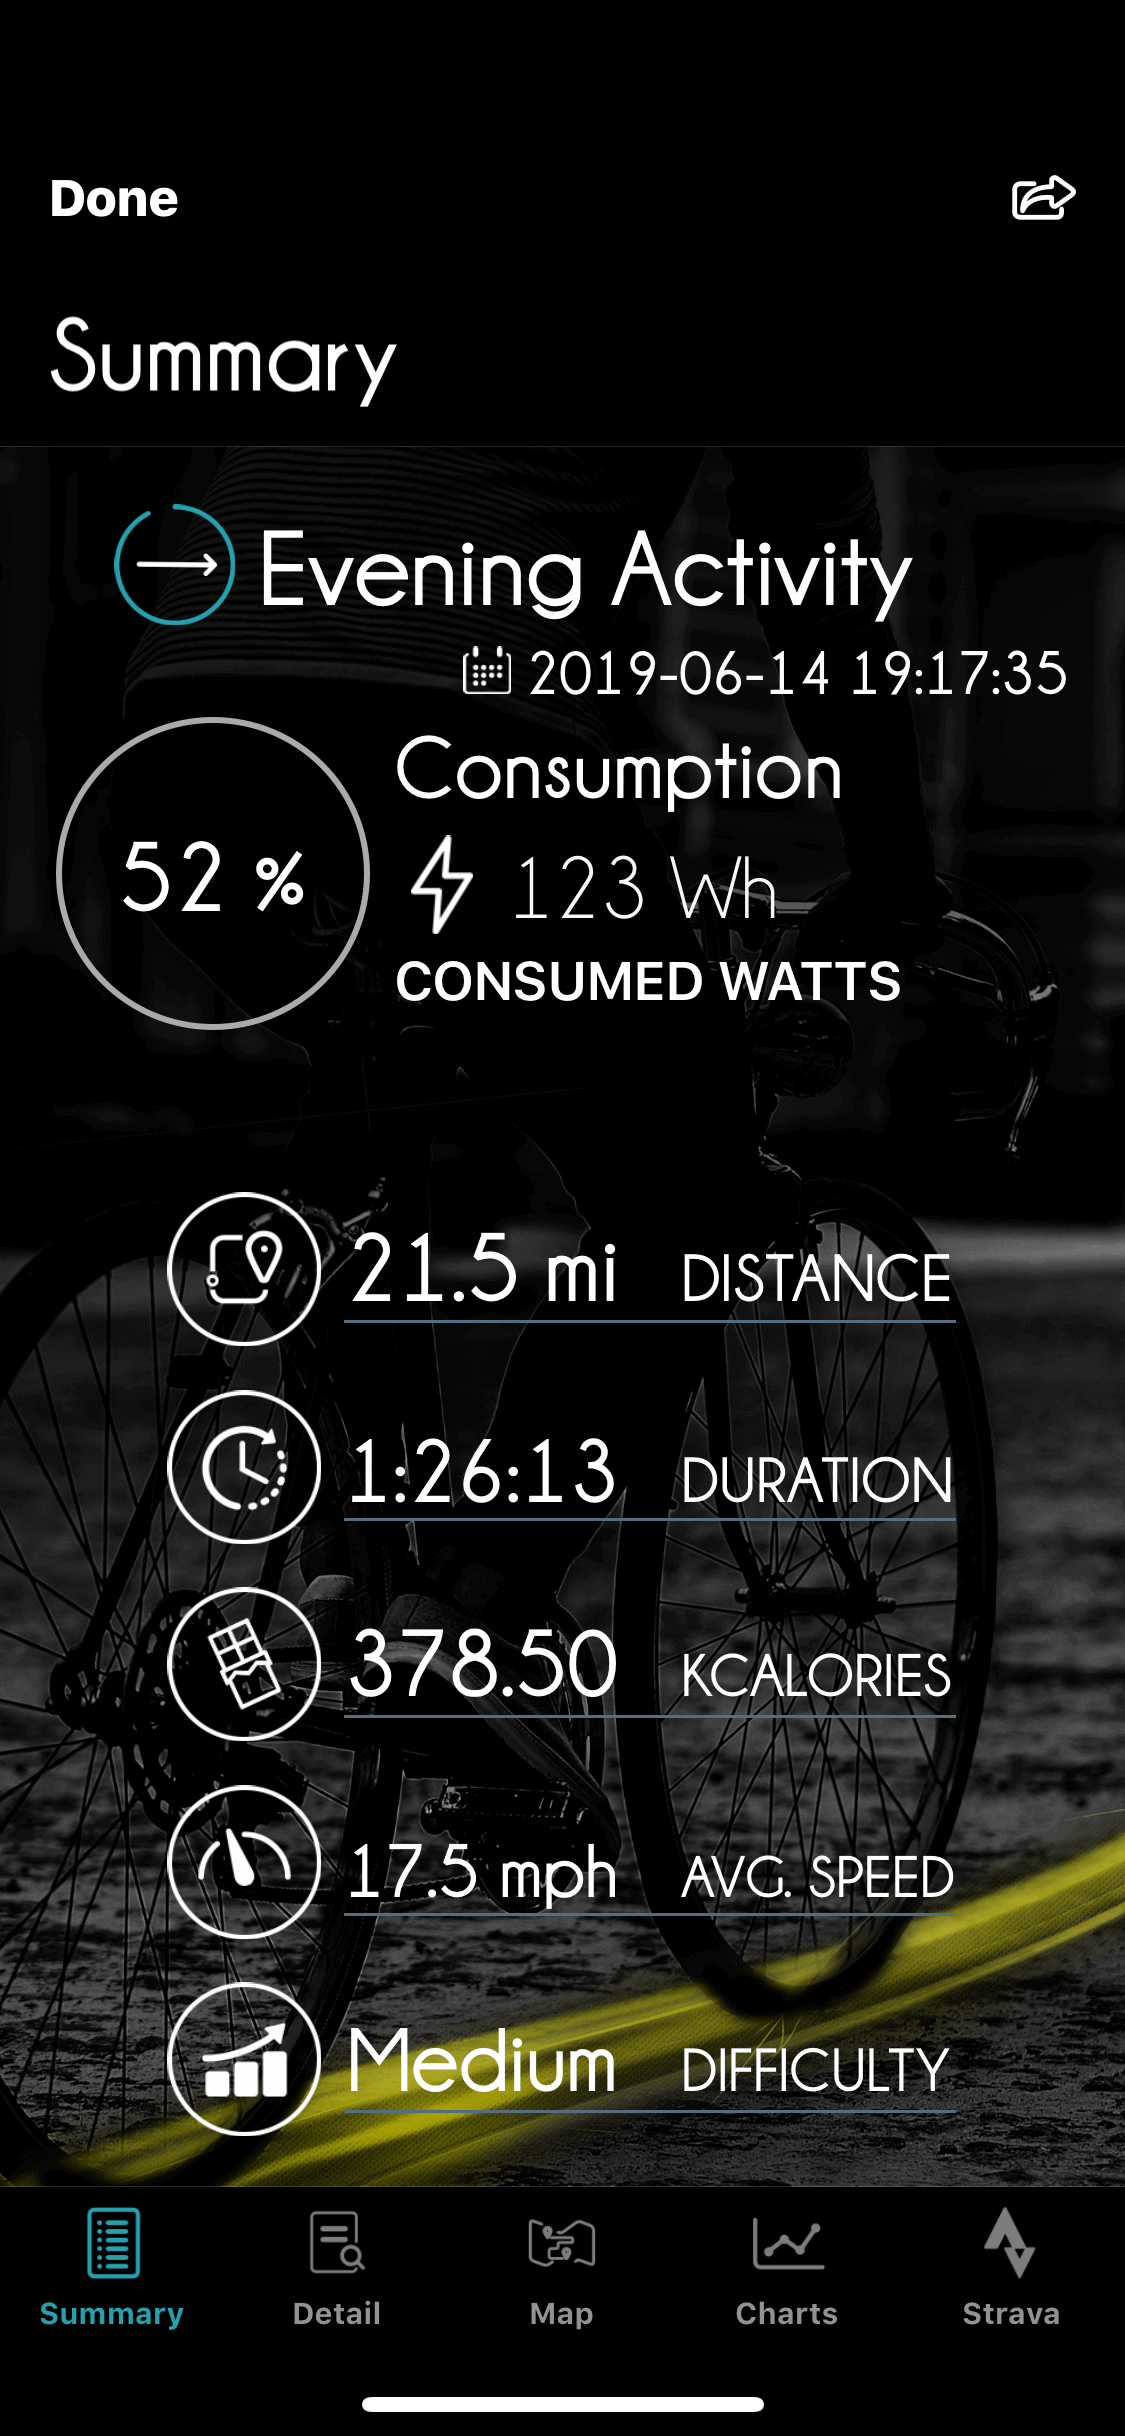 eBikemotion App Screen showing total ride power output